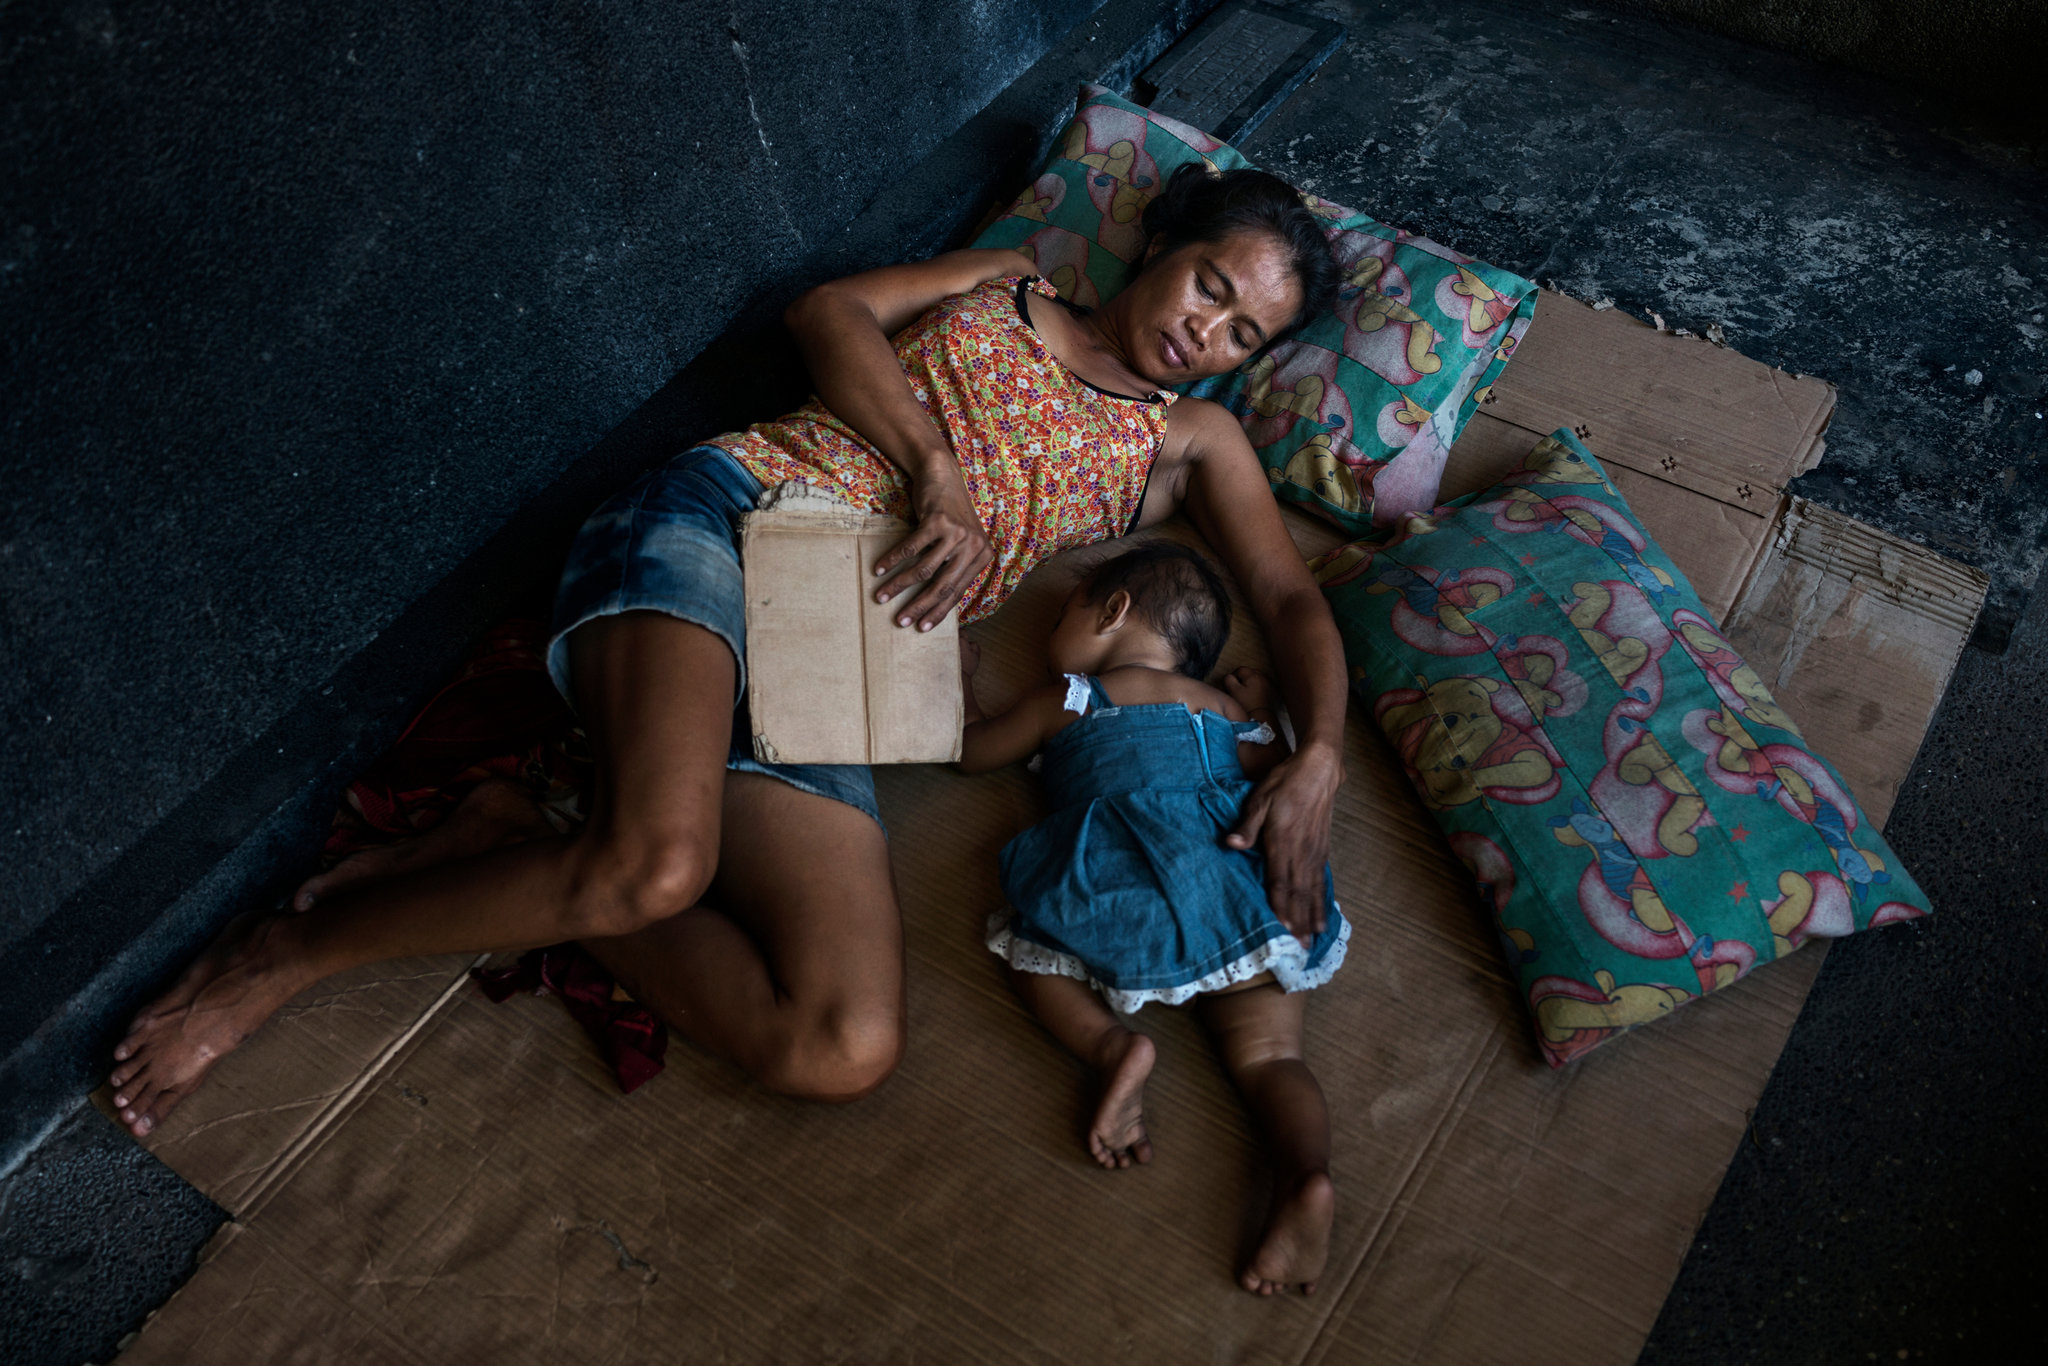 Noemi Canilang, 41, resting in a family mausoleum with her 8-month-old grandchild. She has cared for the mausoleum for 25 years and sleeps there with five members of her family. She receives a monthly stipend of 50 pesos, about $1. (Adam Dean for The New York Times)